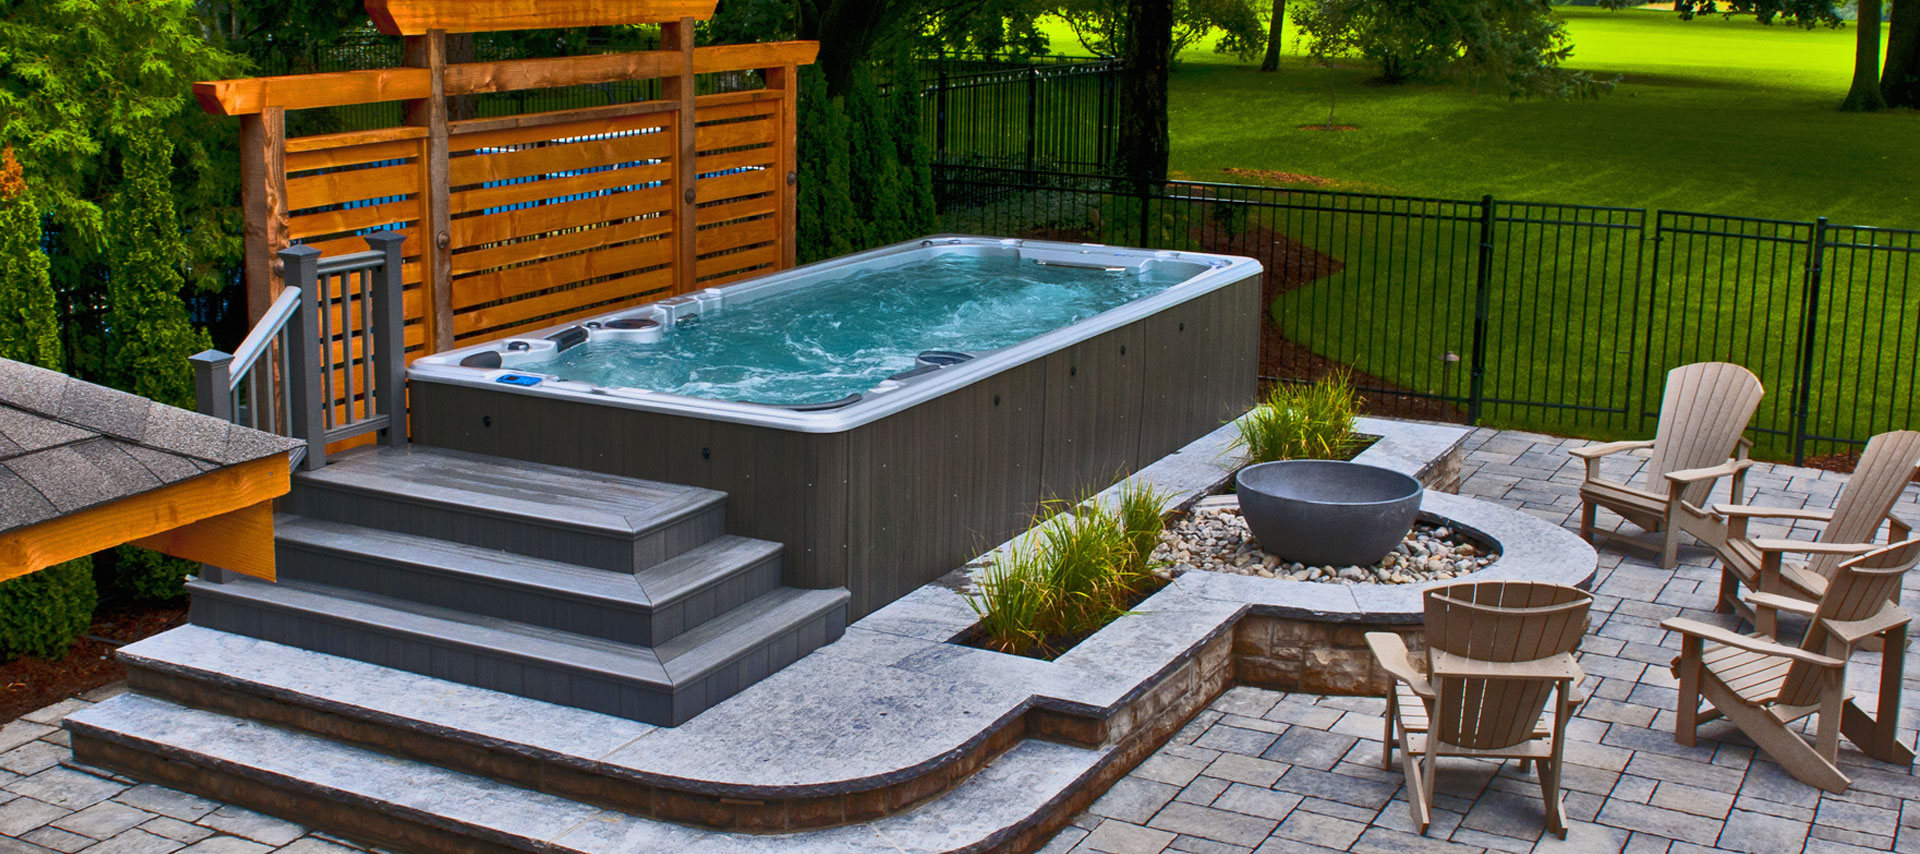 Hydropool Hot Tubs Swim Spas And Accessories